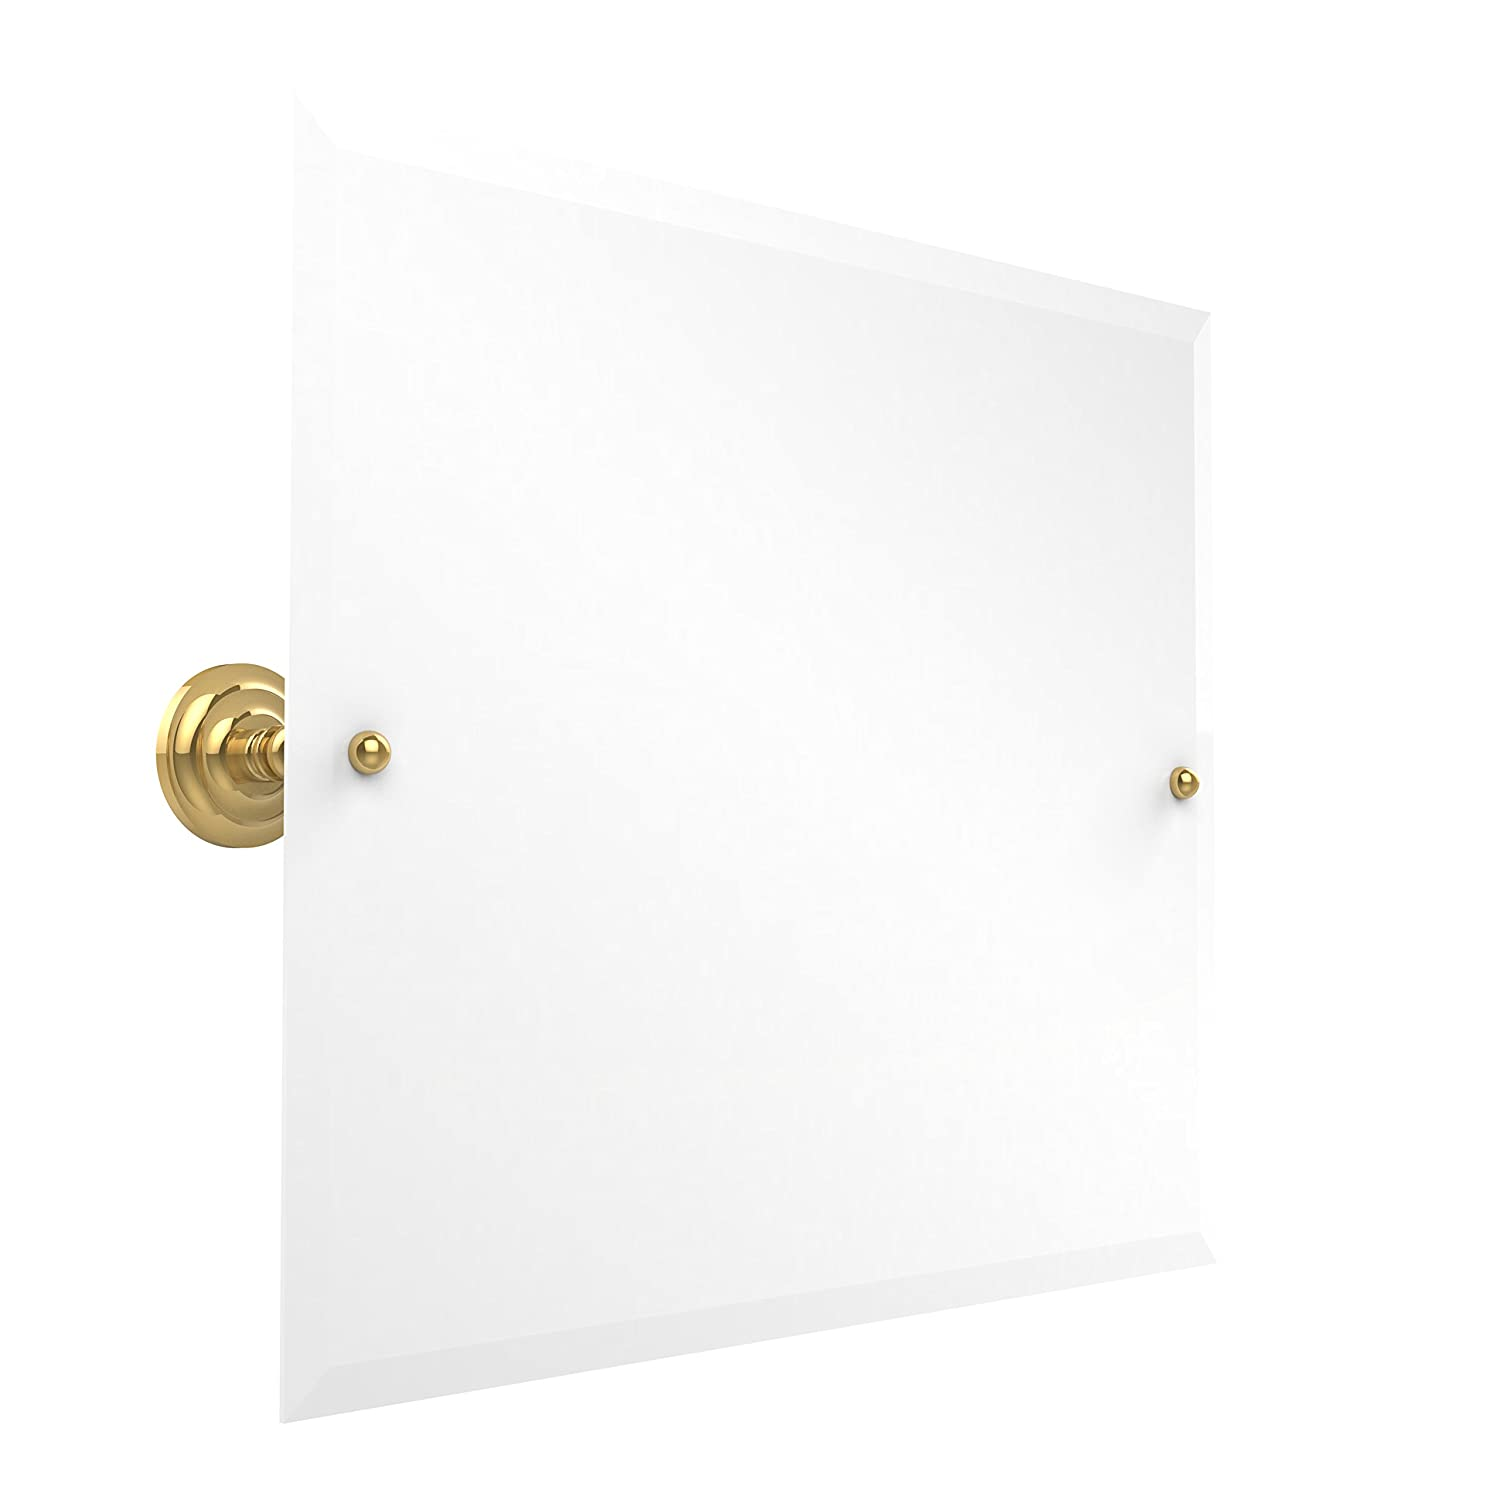 Allied Brass PQN-93-PB 21-Inch X 26-Inch Landscape Rectangular Tilt Mirror, Polished Brass by Allied Brass B00BA7Z3WW  光沢真鍮